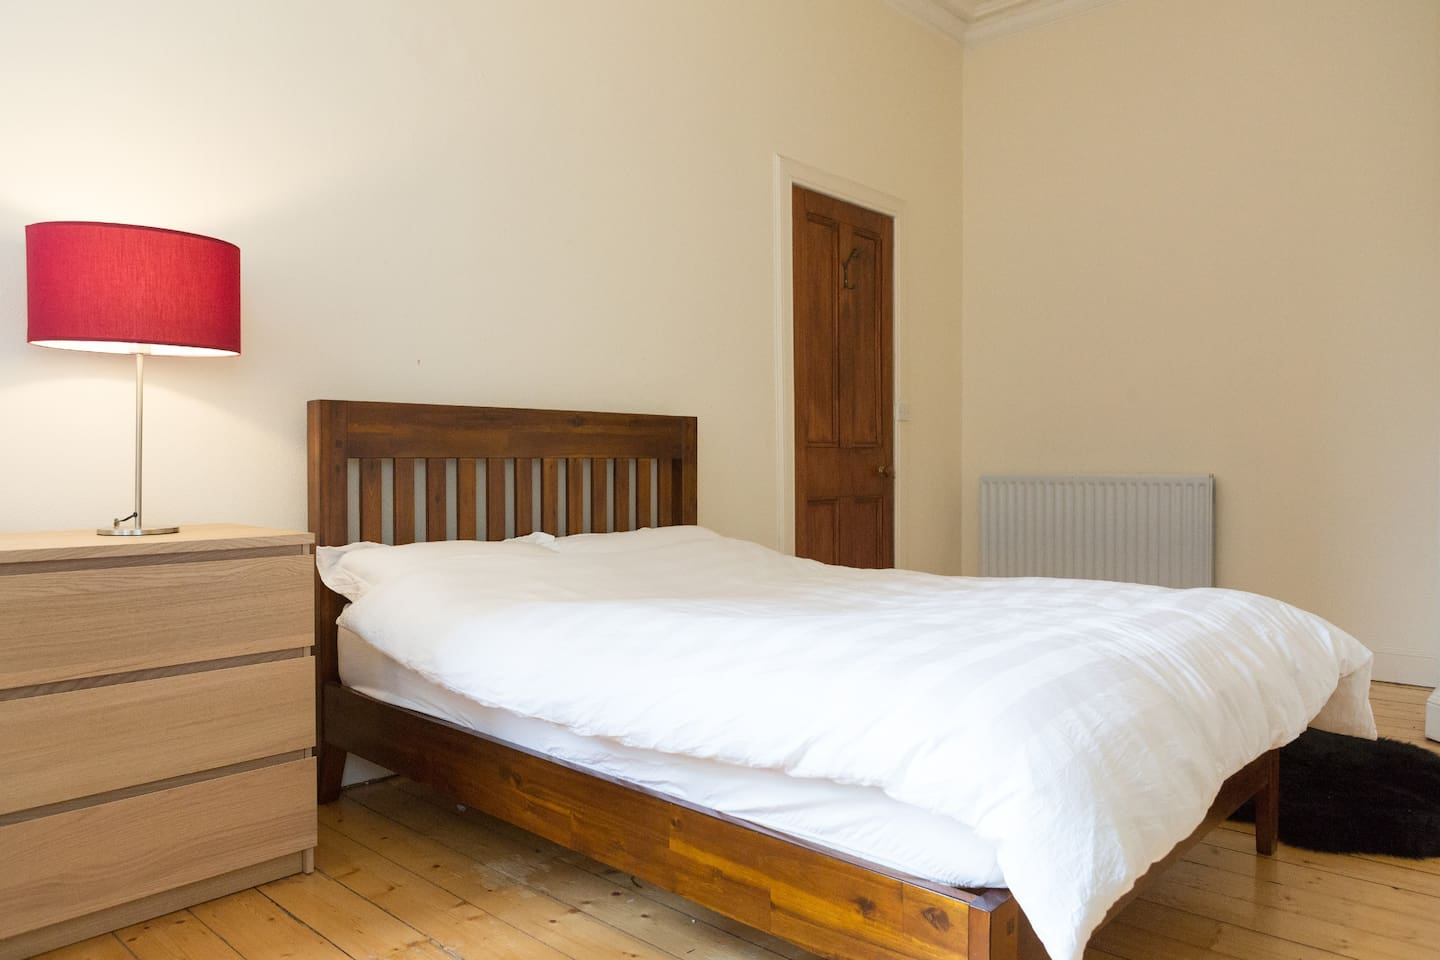 Comfortable double bed in spacious master bedroom with hotel-quality bed linen, extra pillows and luxury mattress topper. LED TV and large work desk also provided.